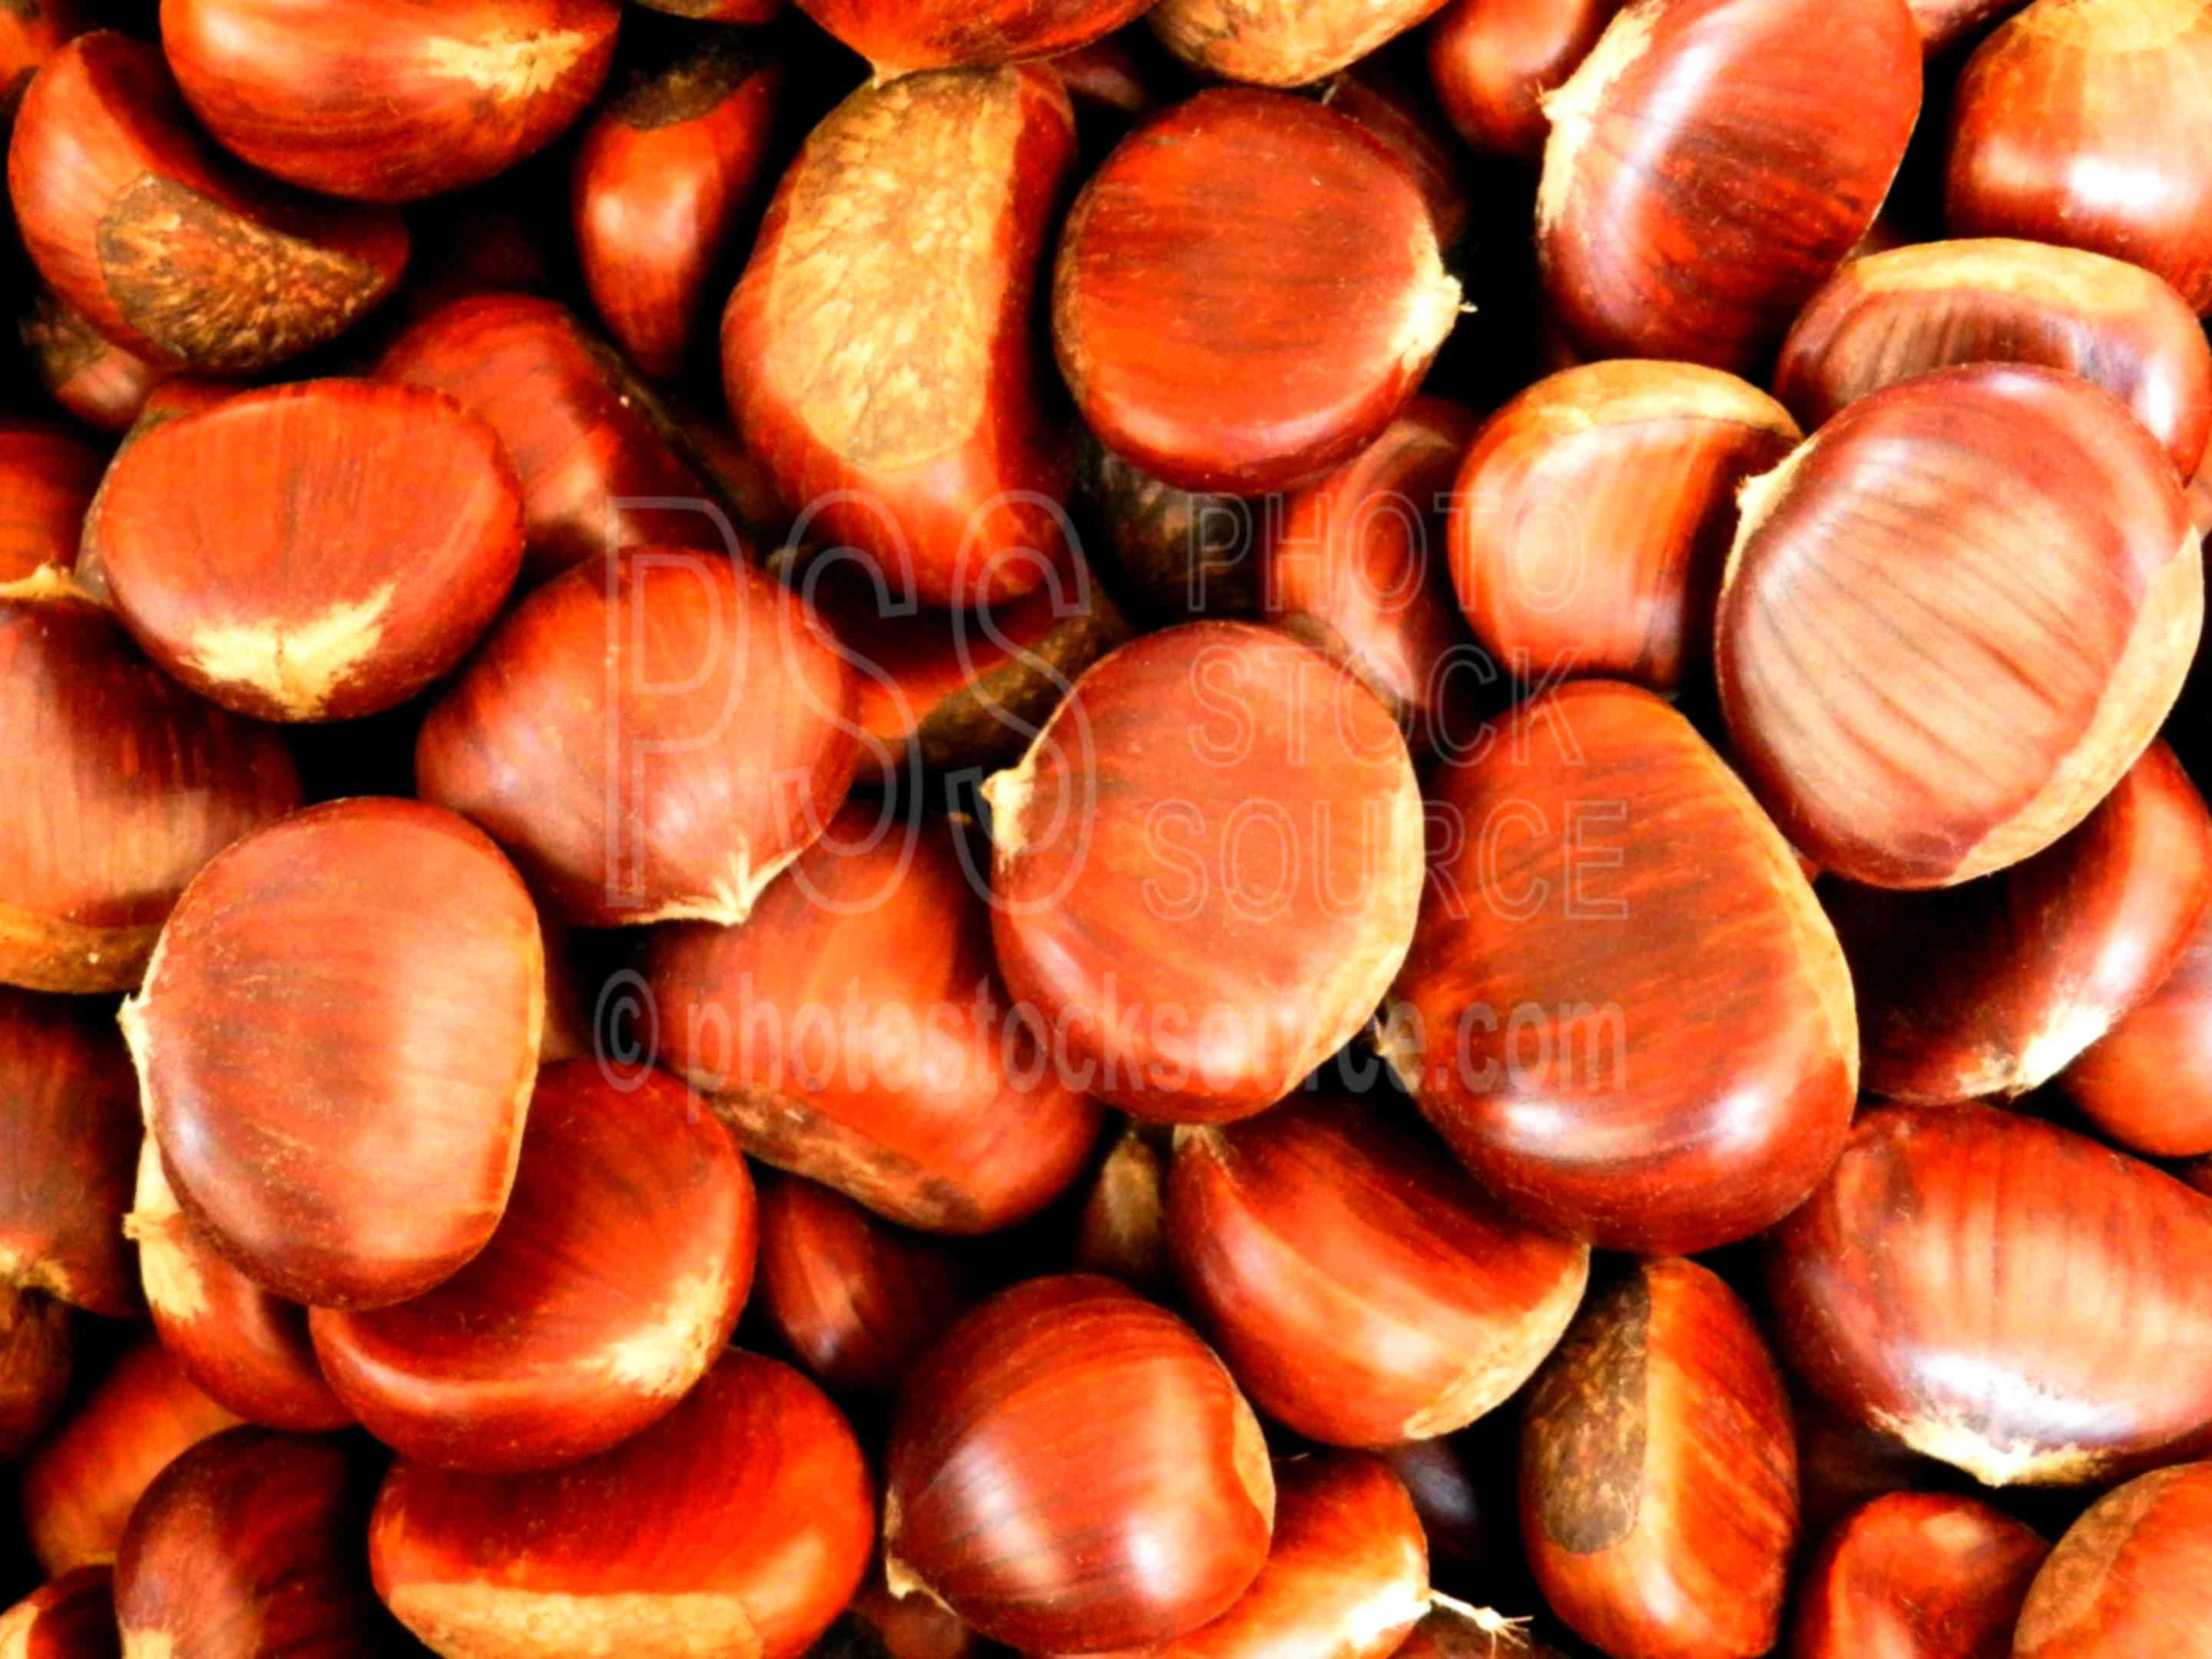 Chestnuts in the Market,siracusa,ortigia,ortygia,food,chestnuts,fruit,sell,selling